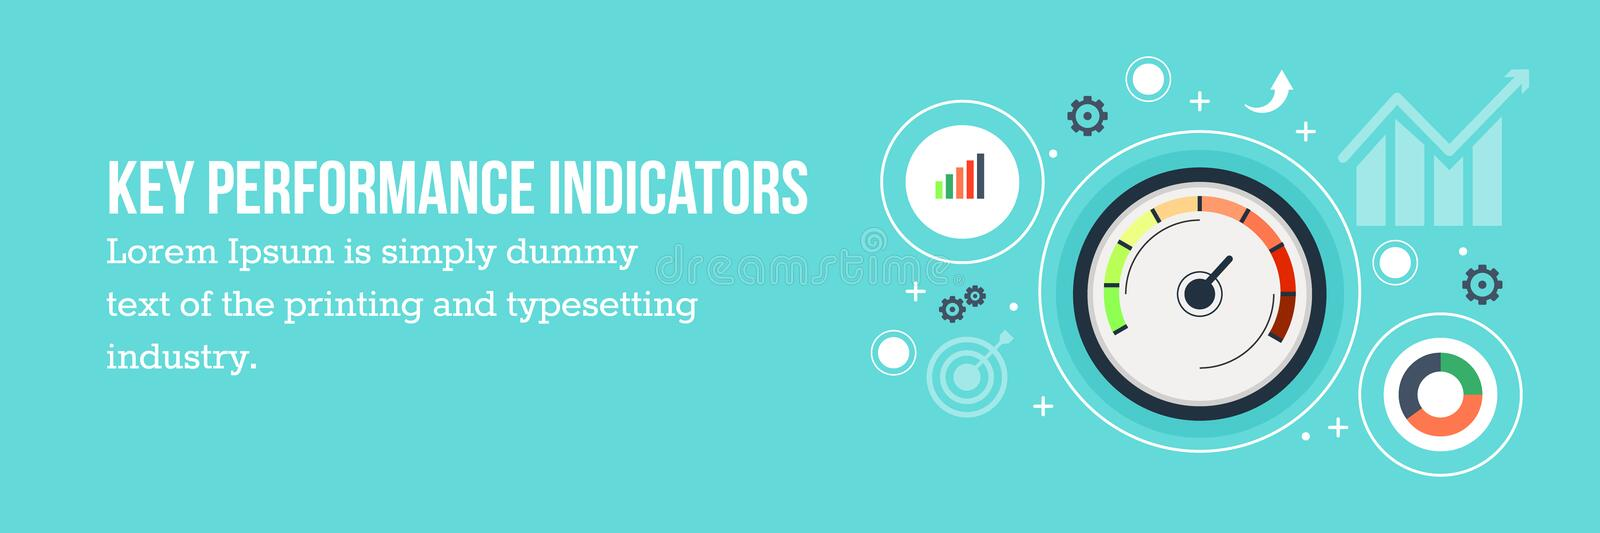 KPI - Key performance indicators flat design web banner. vector illustration